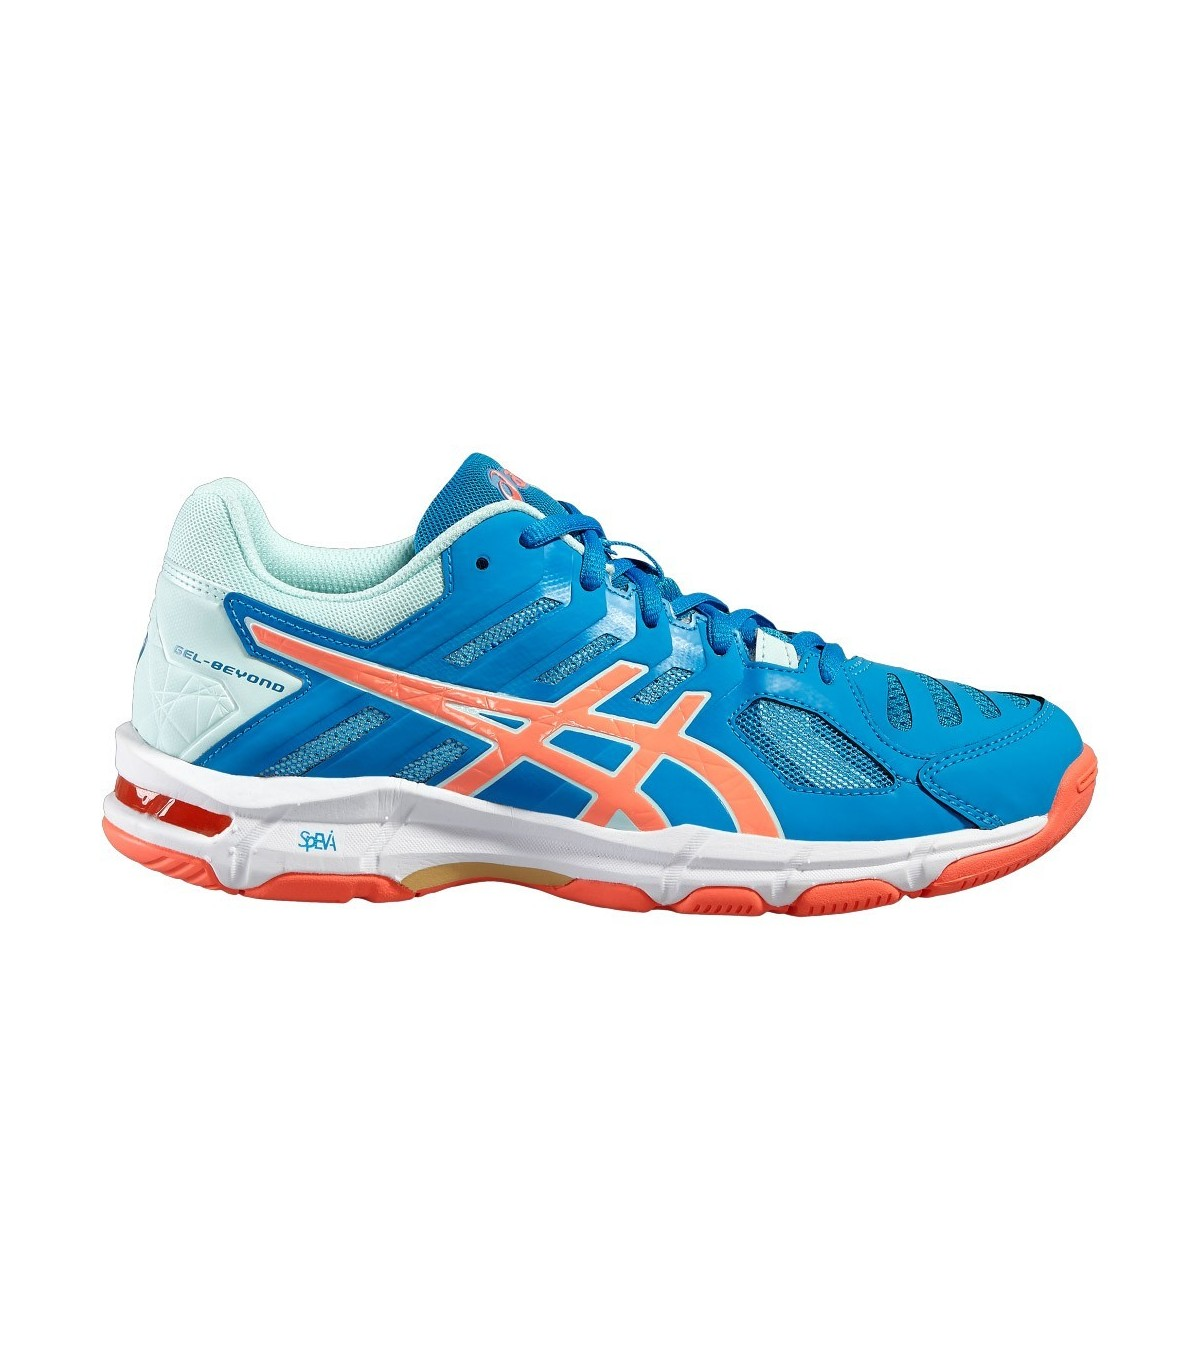 Chaussure asics homme squash